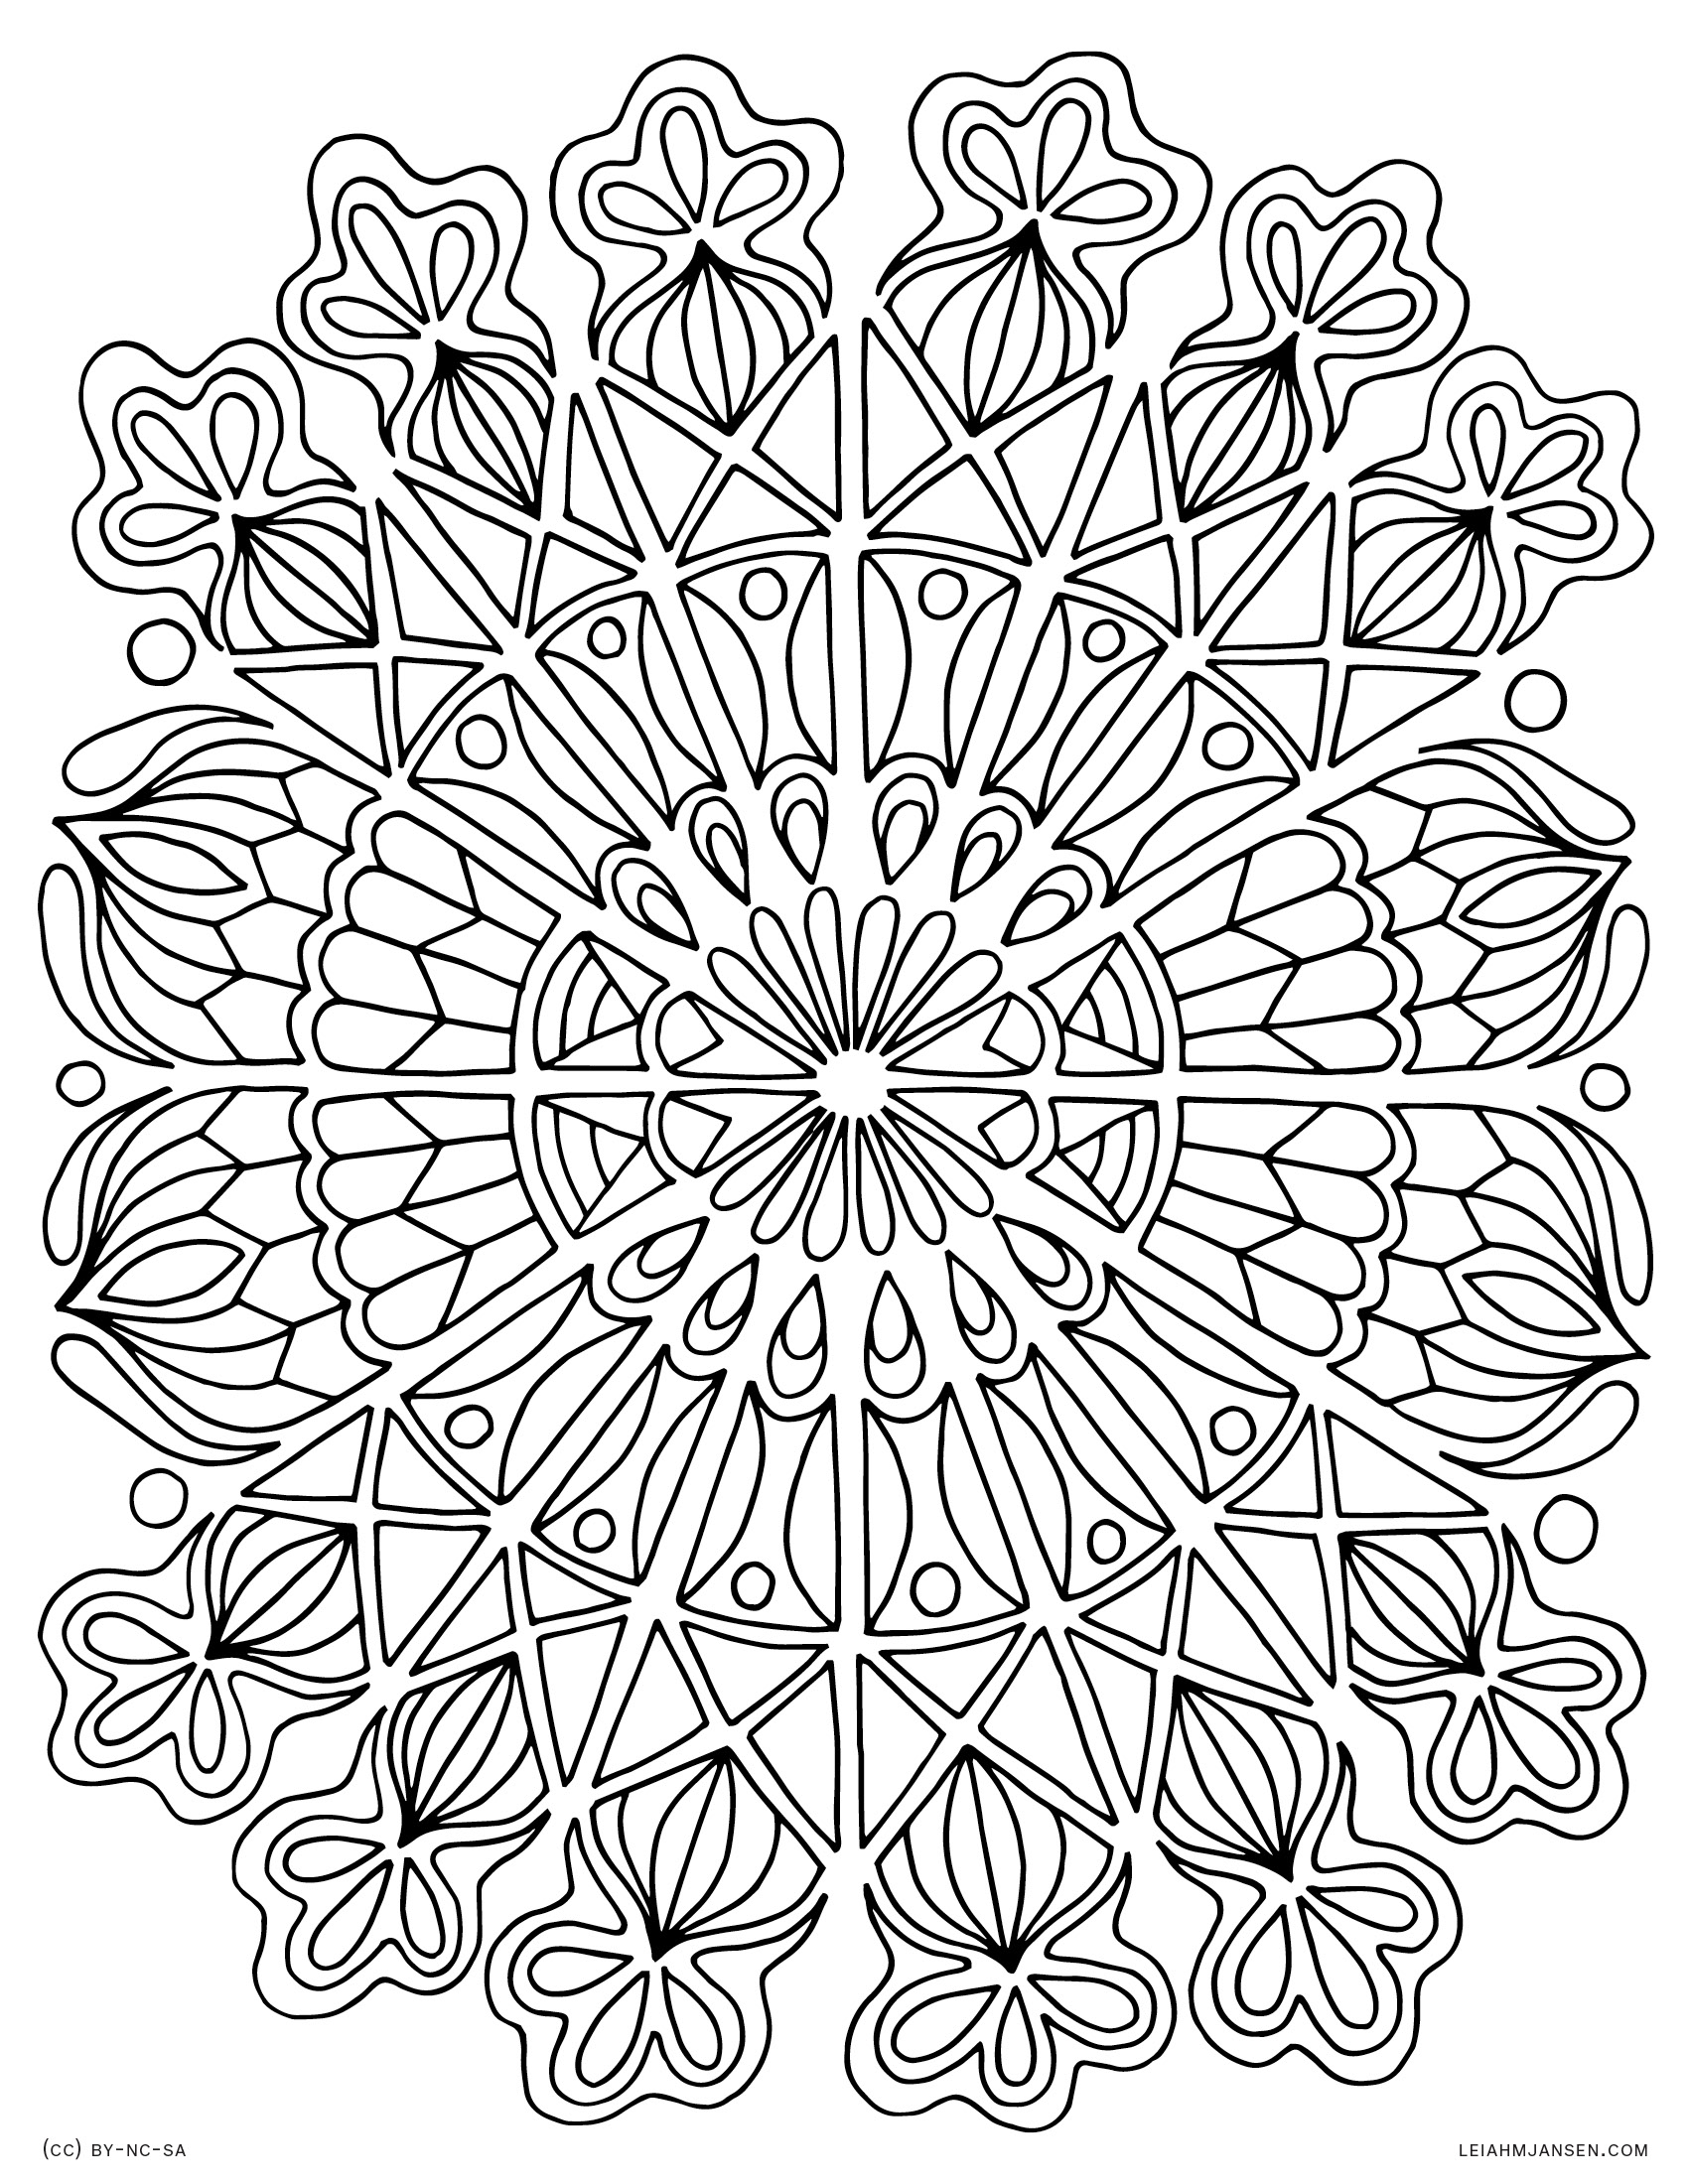 Free Printable Coloring Pages - As For Me and My Homestead | 2200x1700